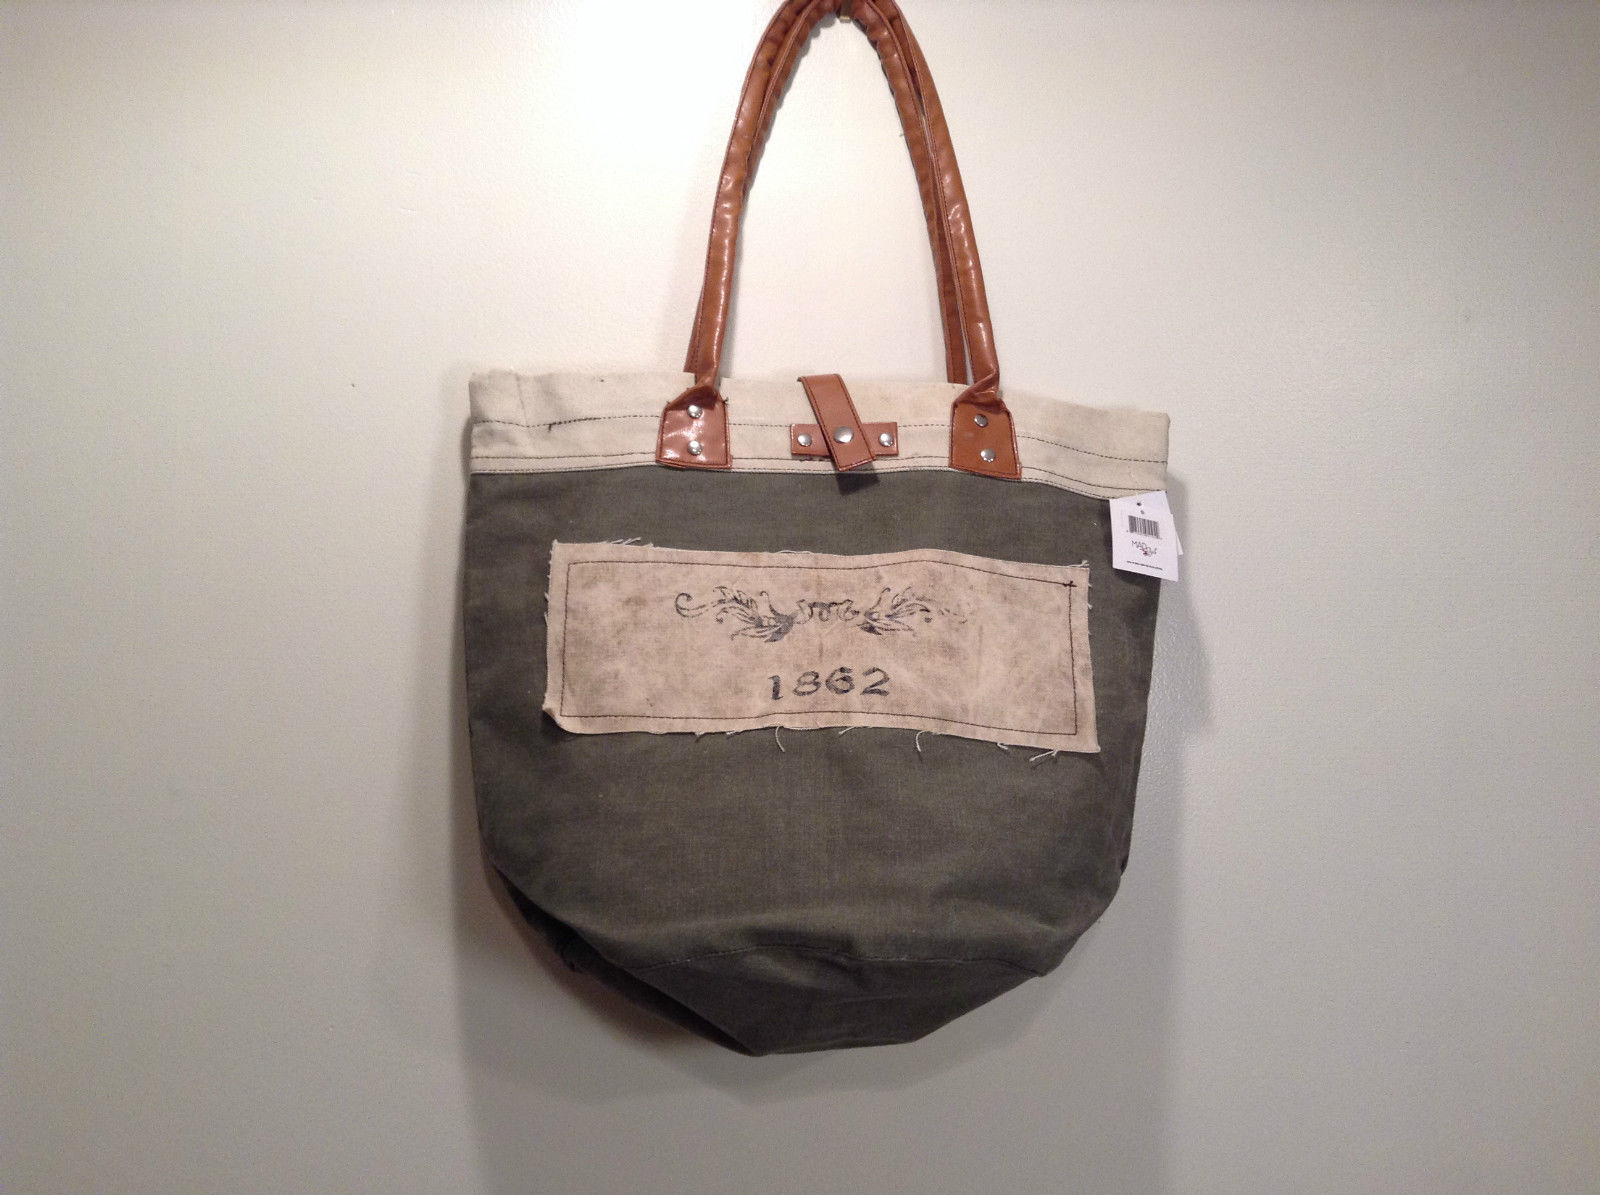 NEW 100% Recycled Cotton Khaki with Brown Straps Shoulder Bag